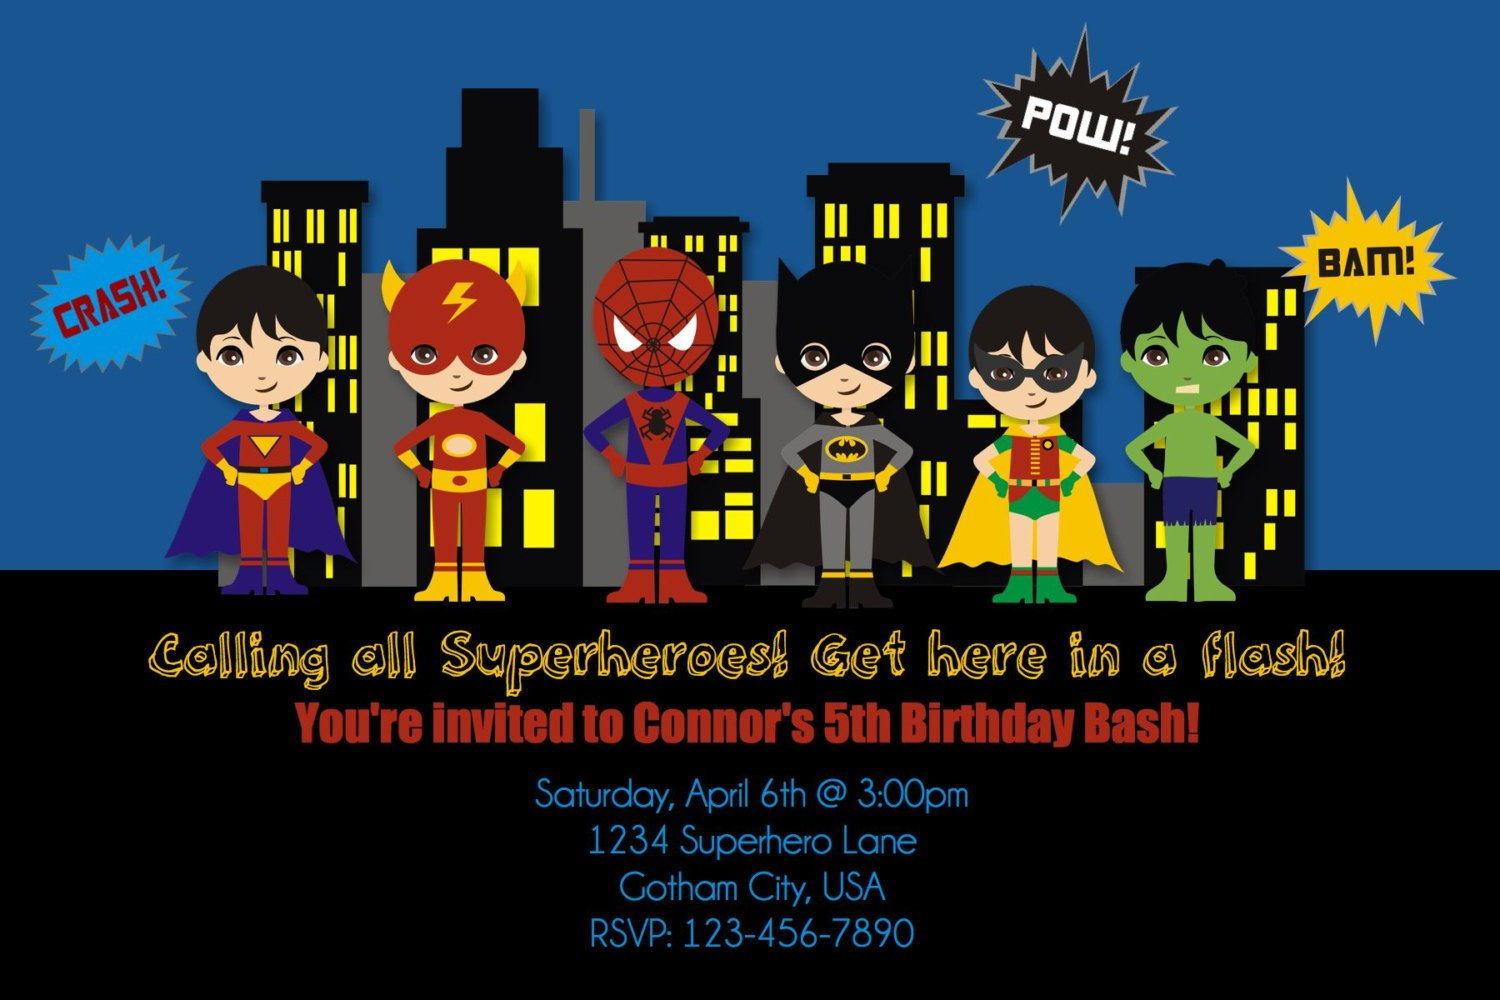 Spiderman Superhero Birthday Party Invitations – Bagvania FREE ...